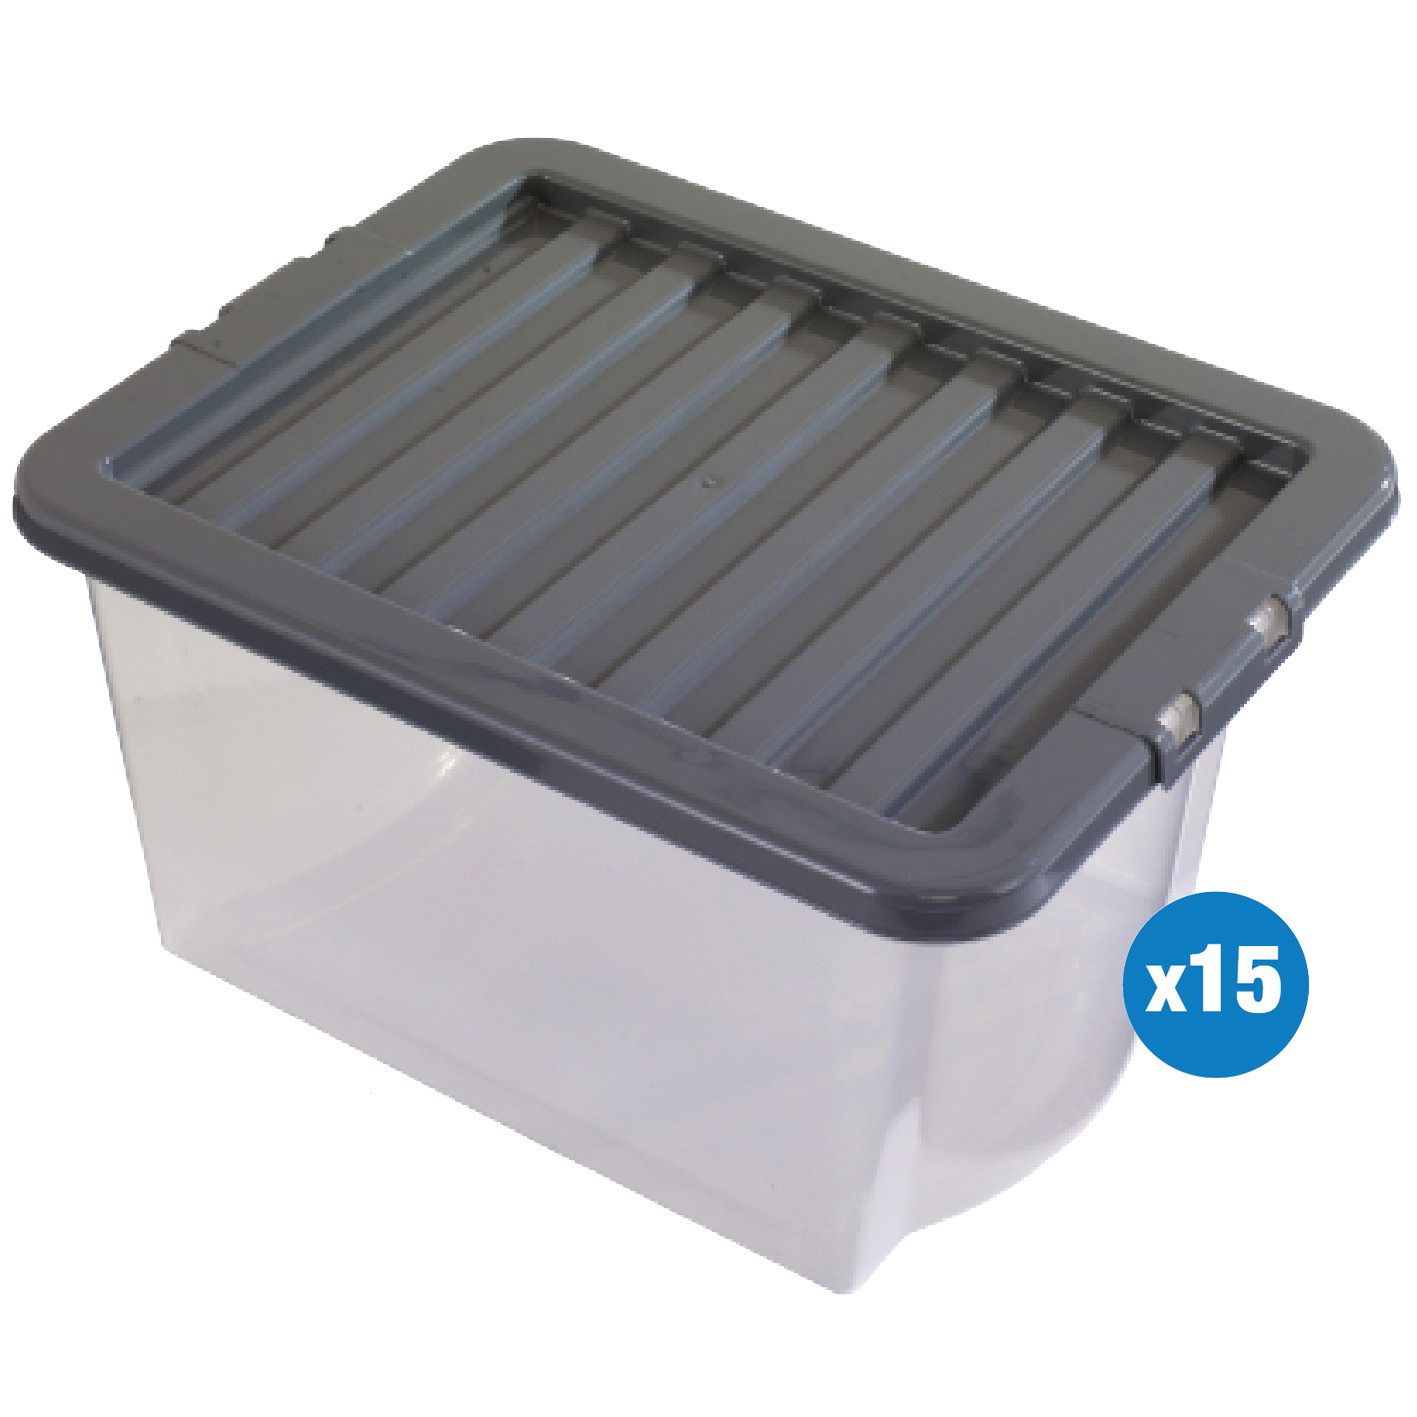 NO RESERVE 15 x Clear 30 Litre Plastic Box With Lid Boxes Storage Container Wham